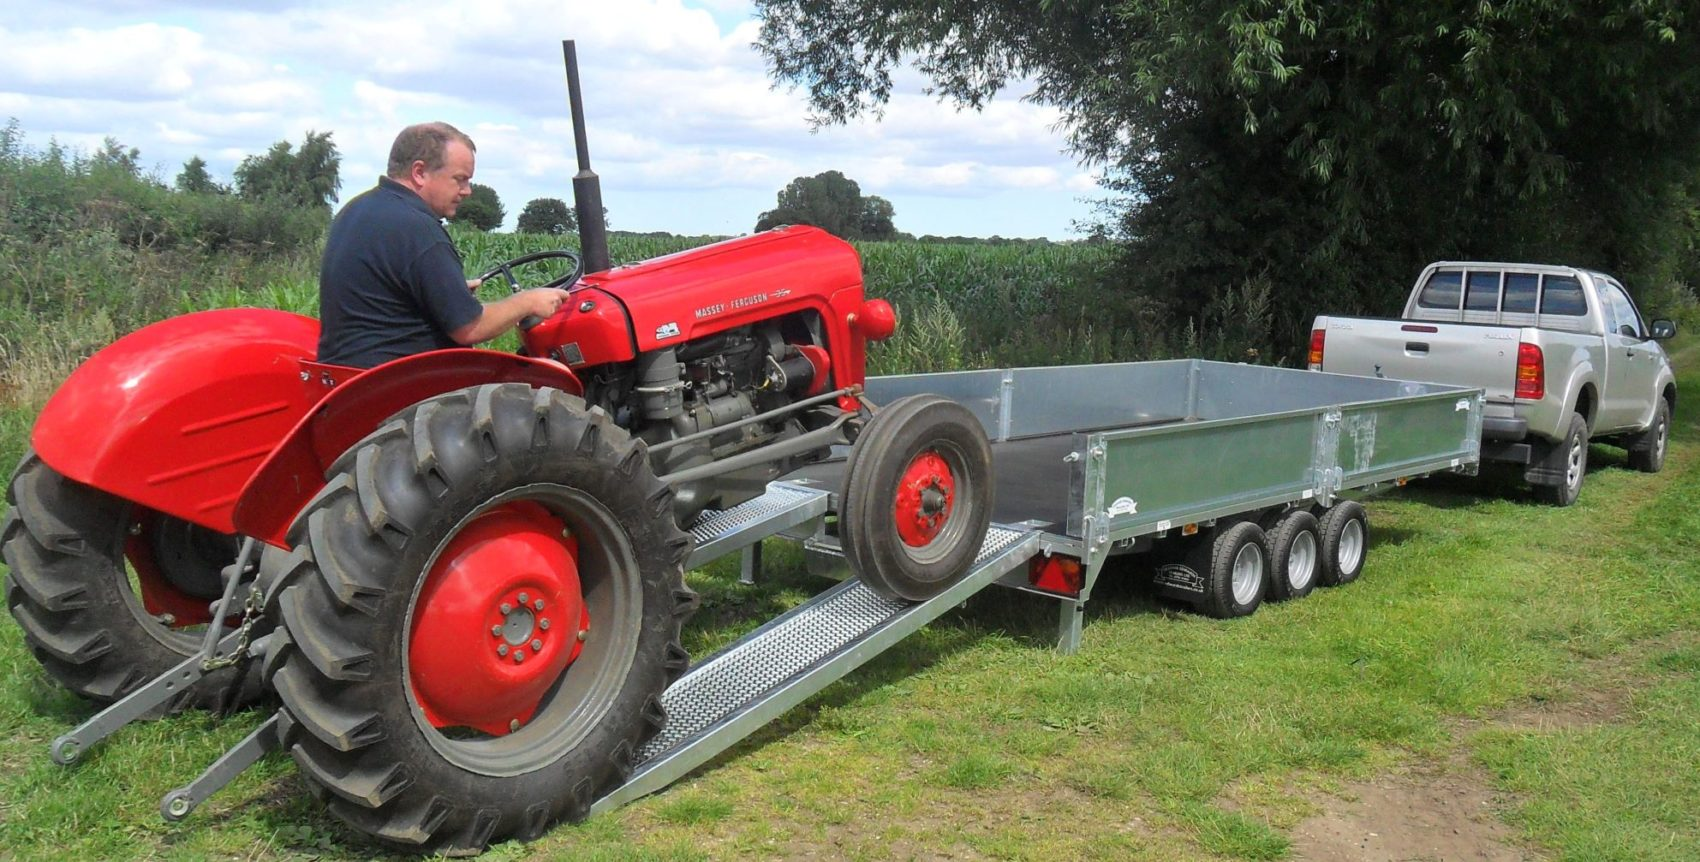 Red Tractor on Edwards Trailers